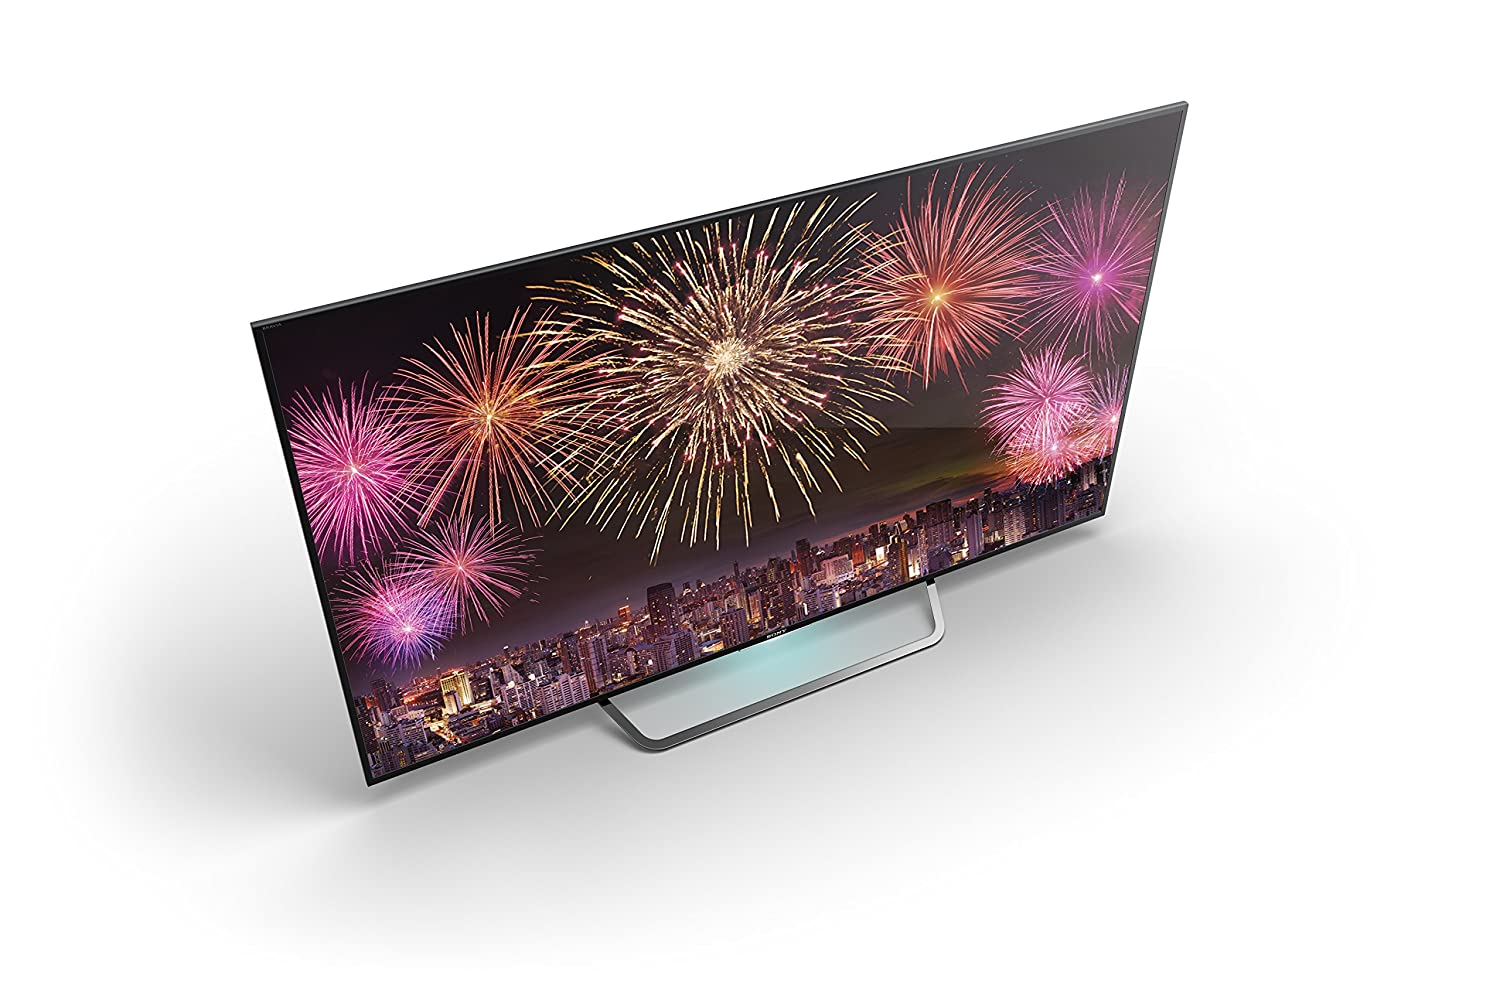 sony tv with youview. sony kd-49x8305c 49 inch smart 4k ultrahd tv (android tv, processor x1, x-reality pro) - black: amazon.co.uk: tv with youview